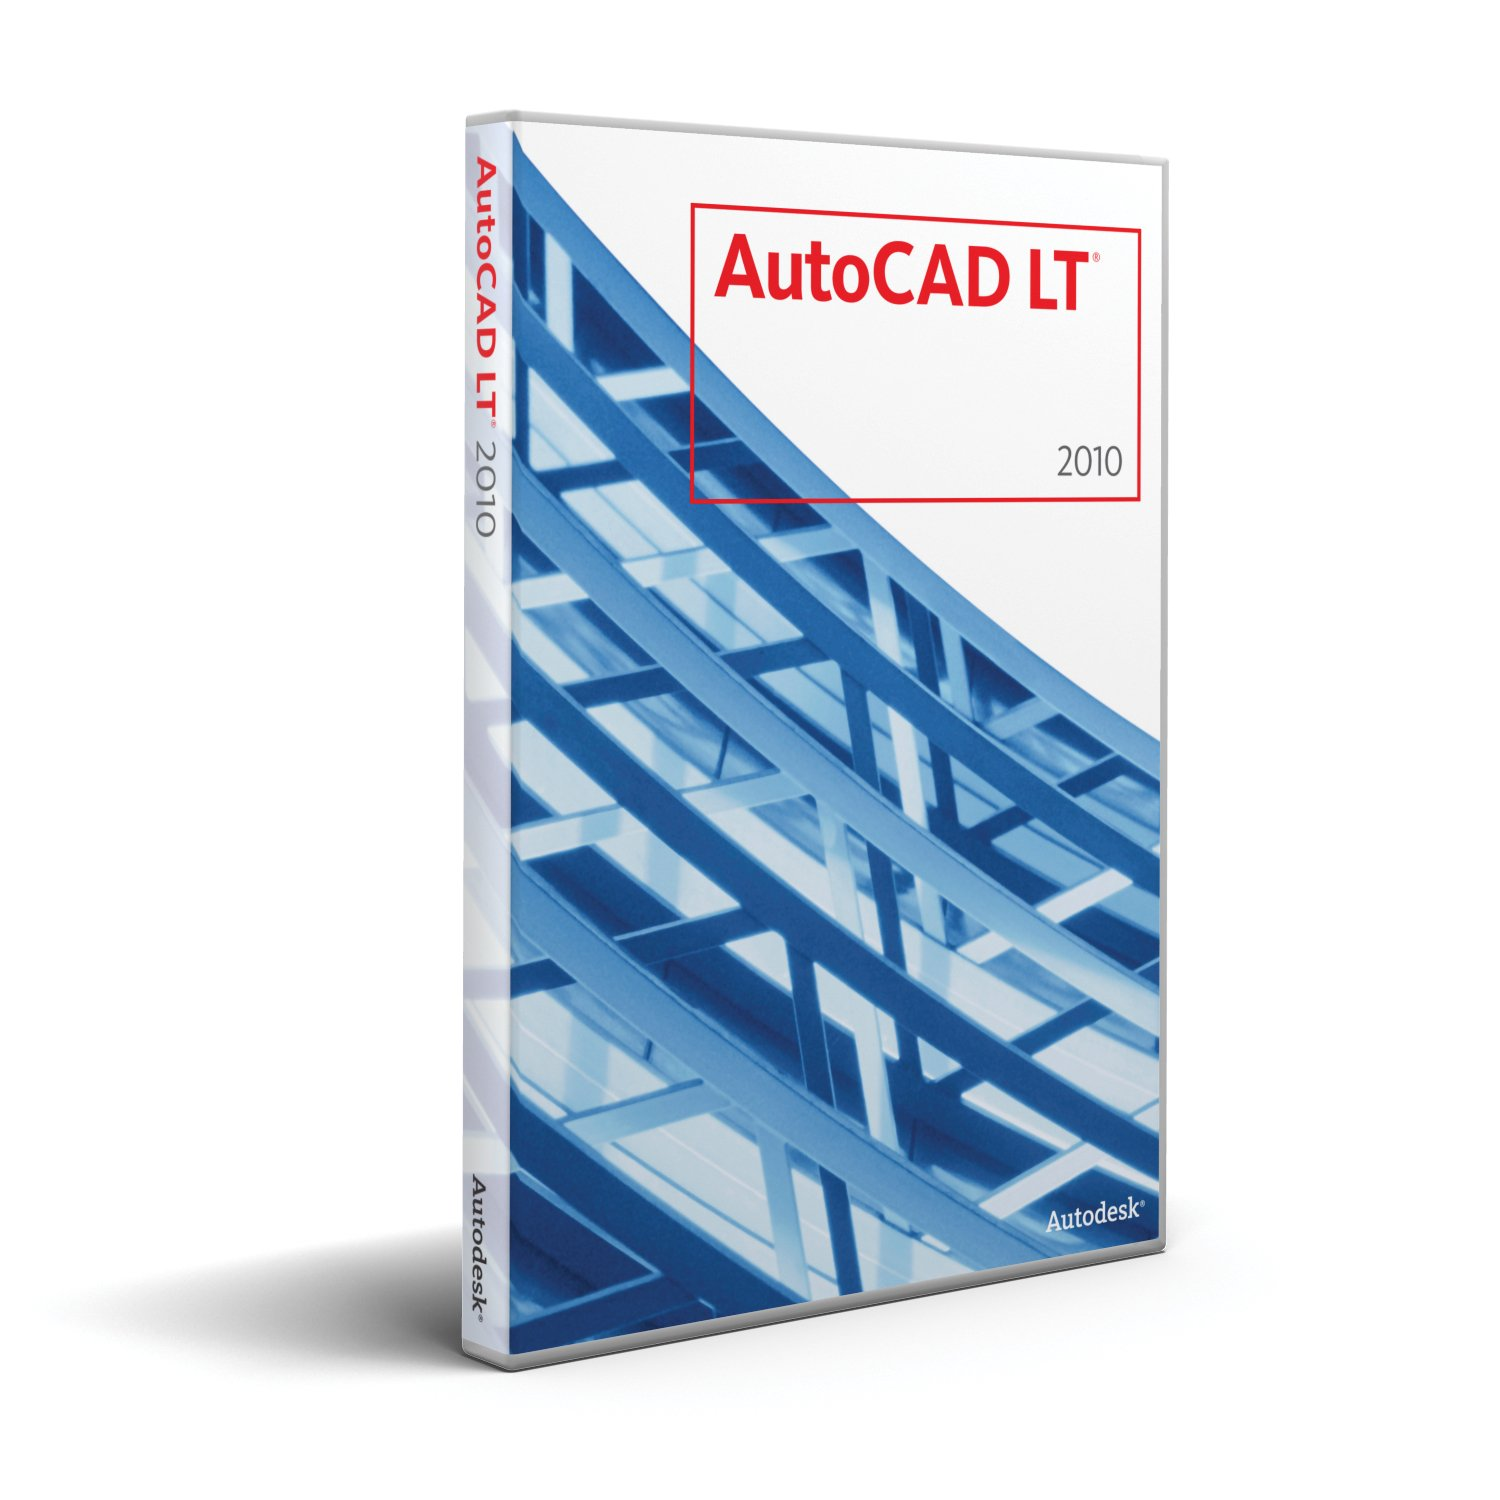 Amazon.com: AutoCAD LT 2010 [OLD VERSION]: Software